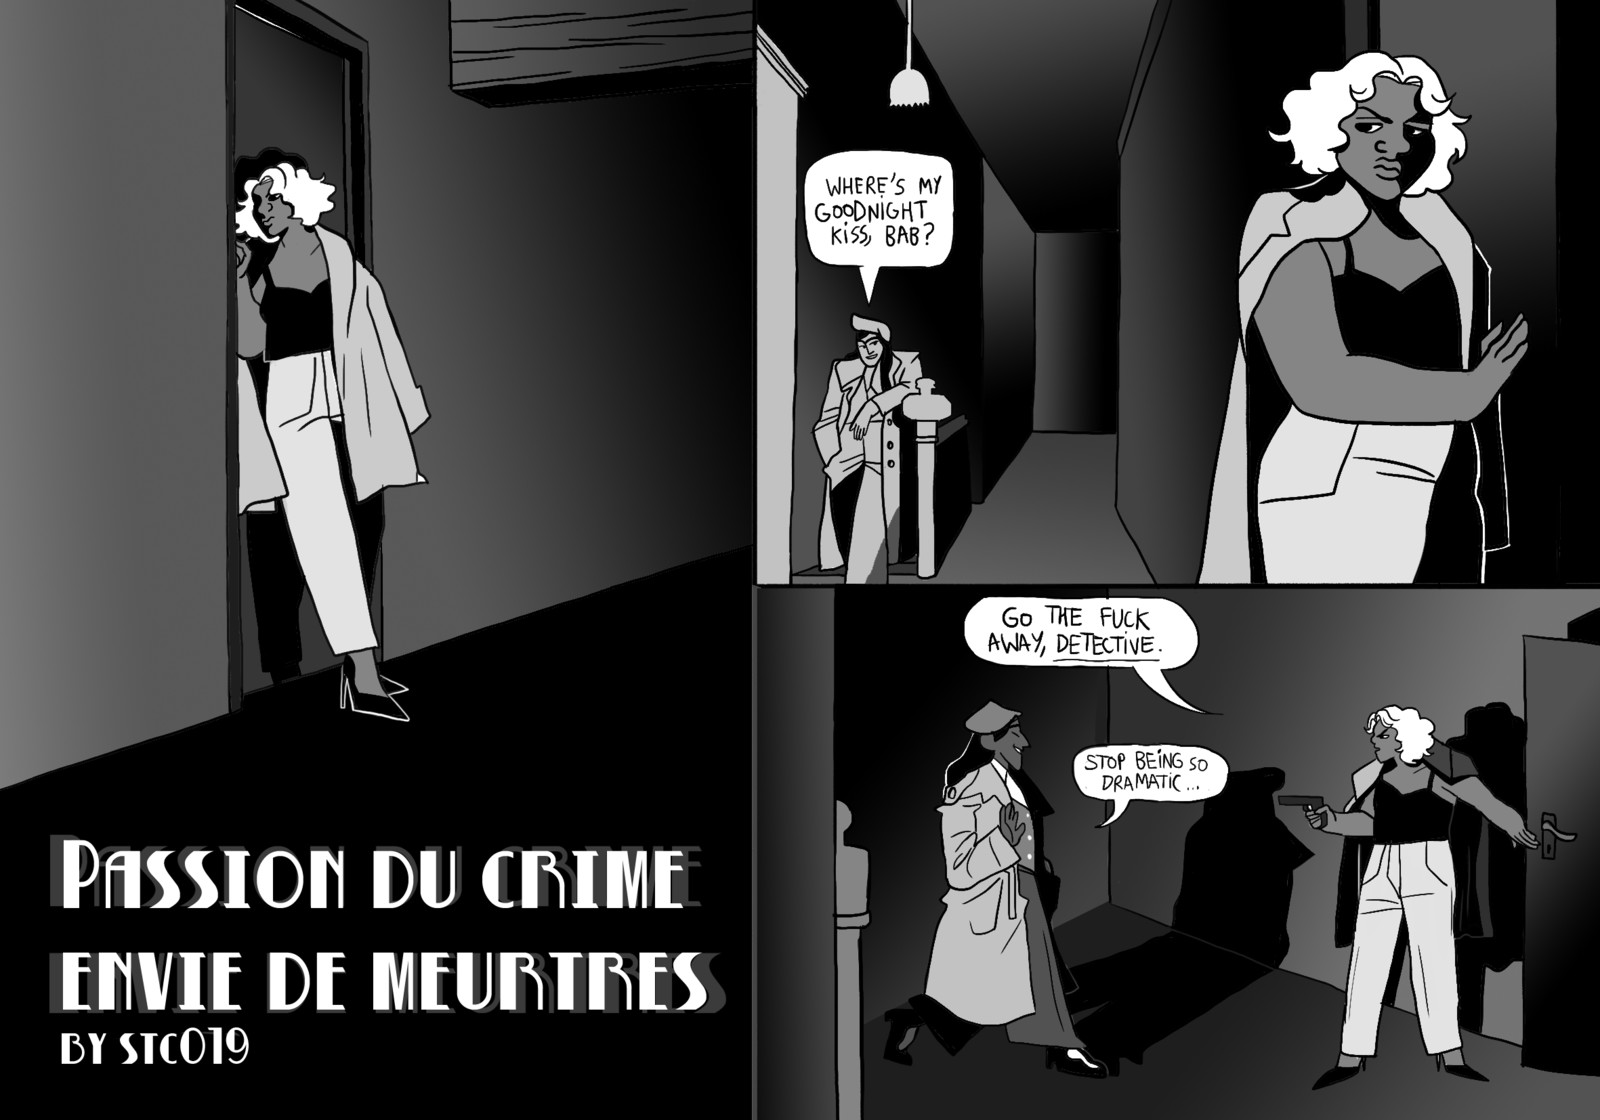 Passion du crime, Envie de meurtres (comic)